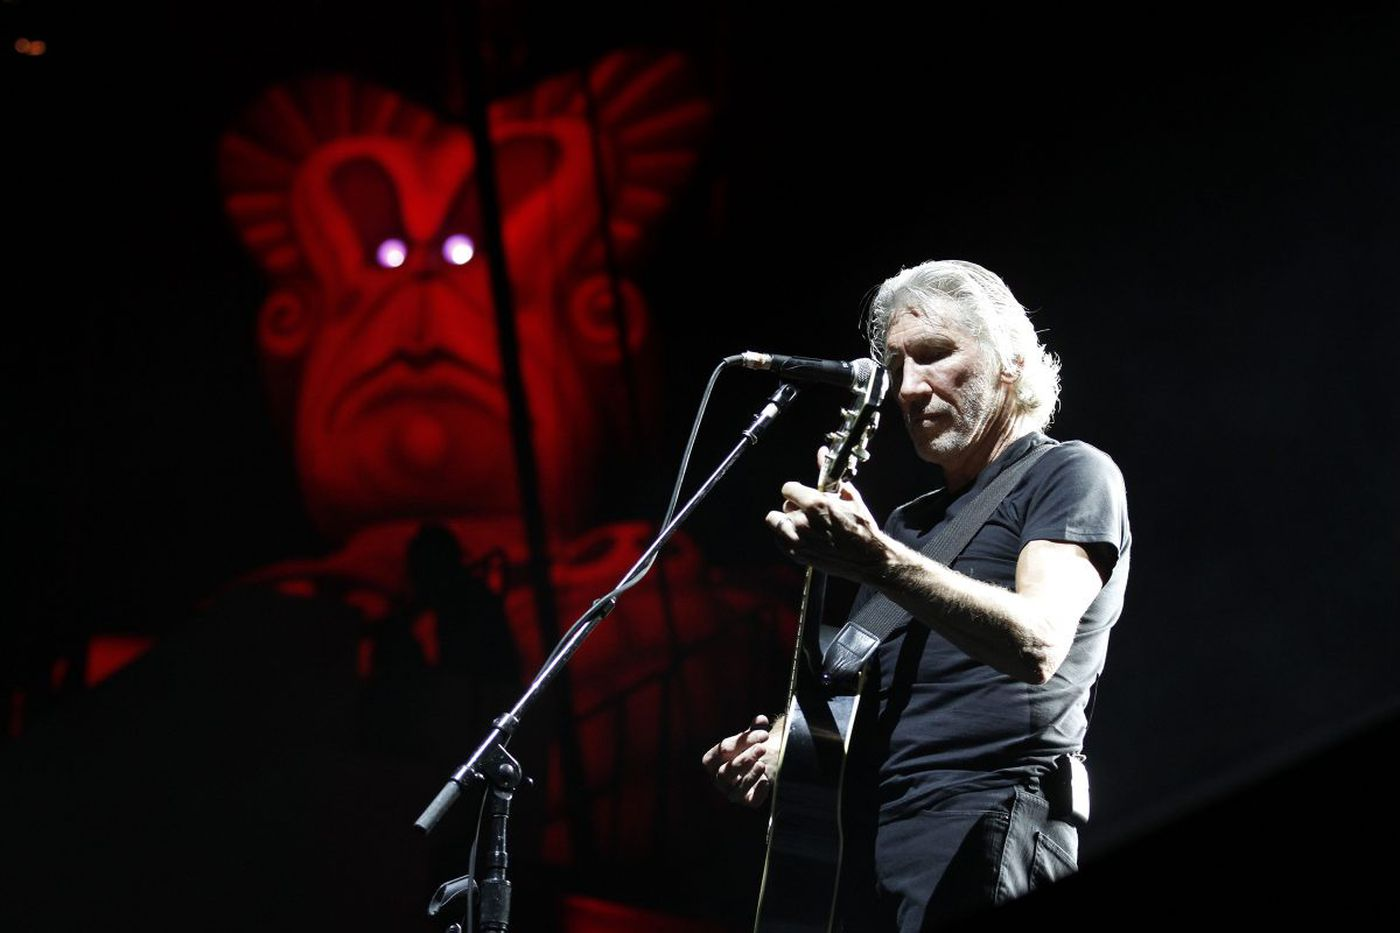 Is Roger Waters an anti-Semite?